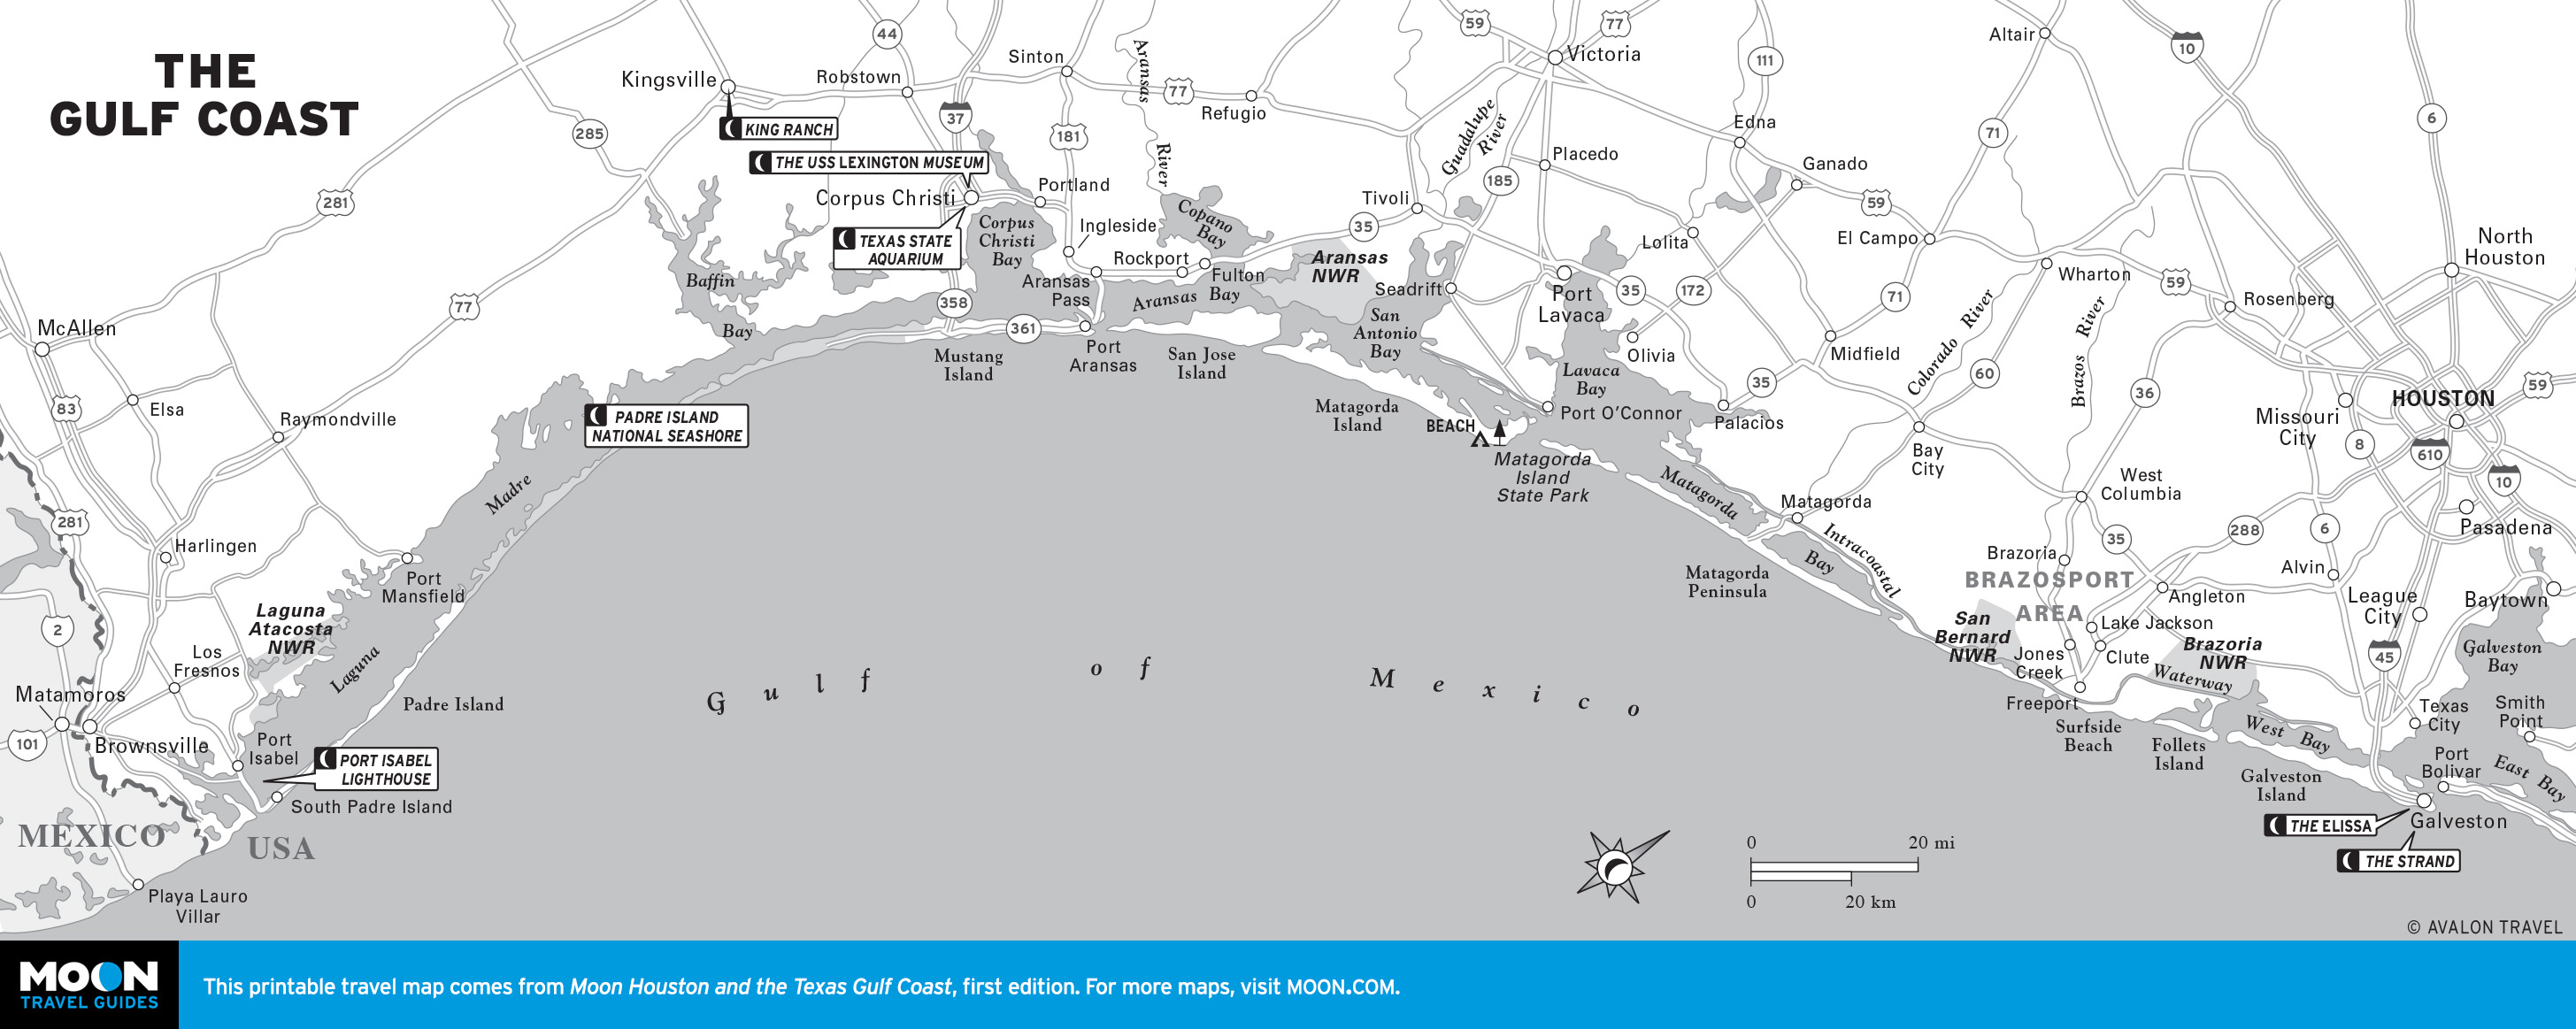 Map Of Texas Gulf Coast Beaches | Business Ideas 2013 - Map Of Texas Coast